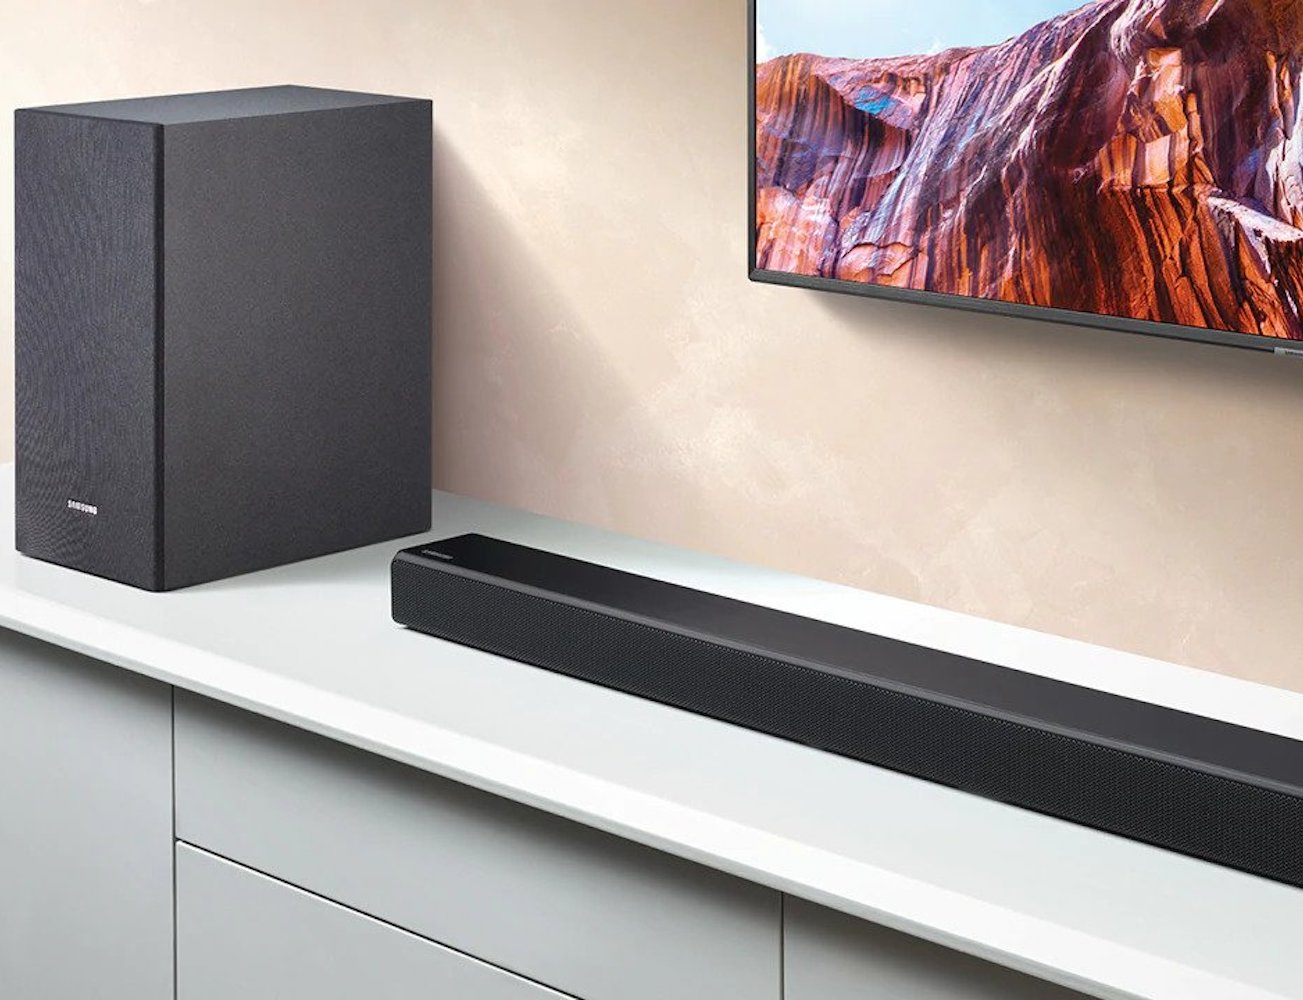 Samsung R Series Soundbar Collection goes perfectly with your Samsung TV